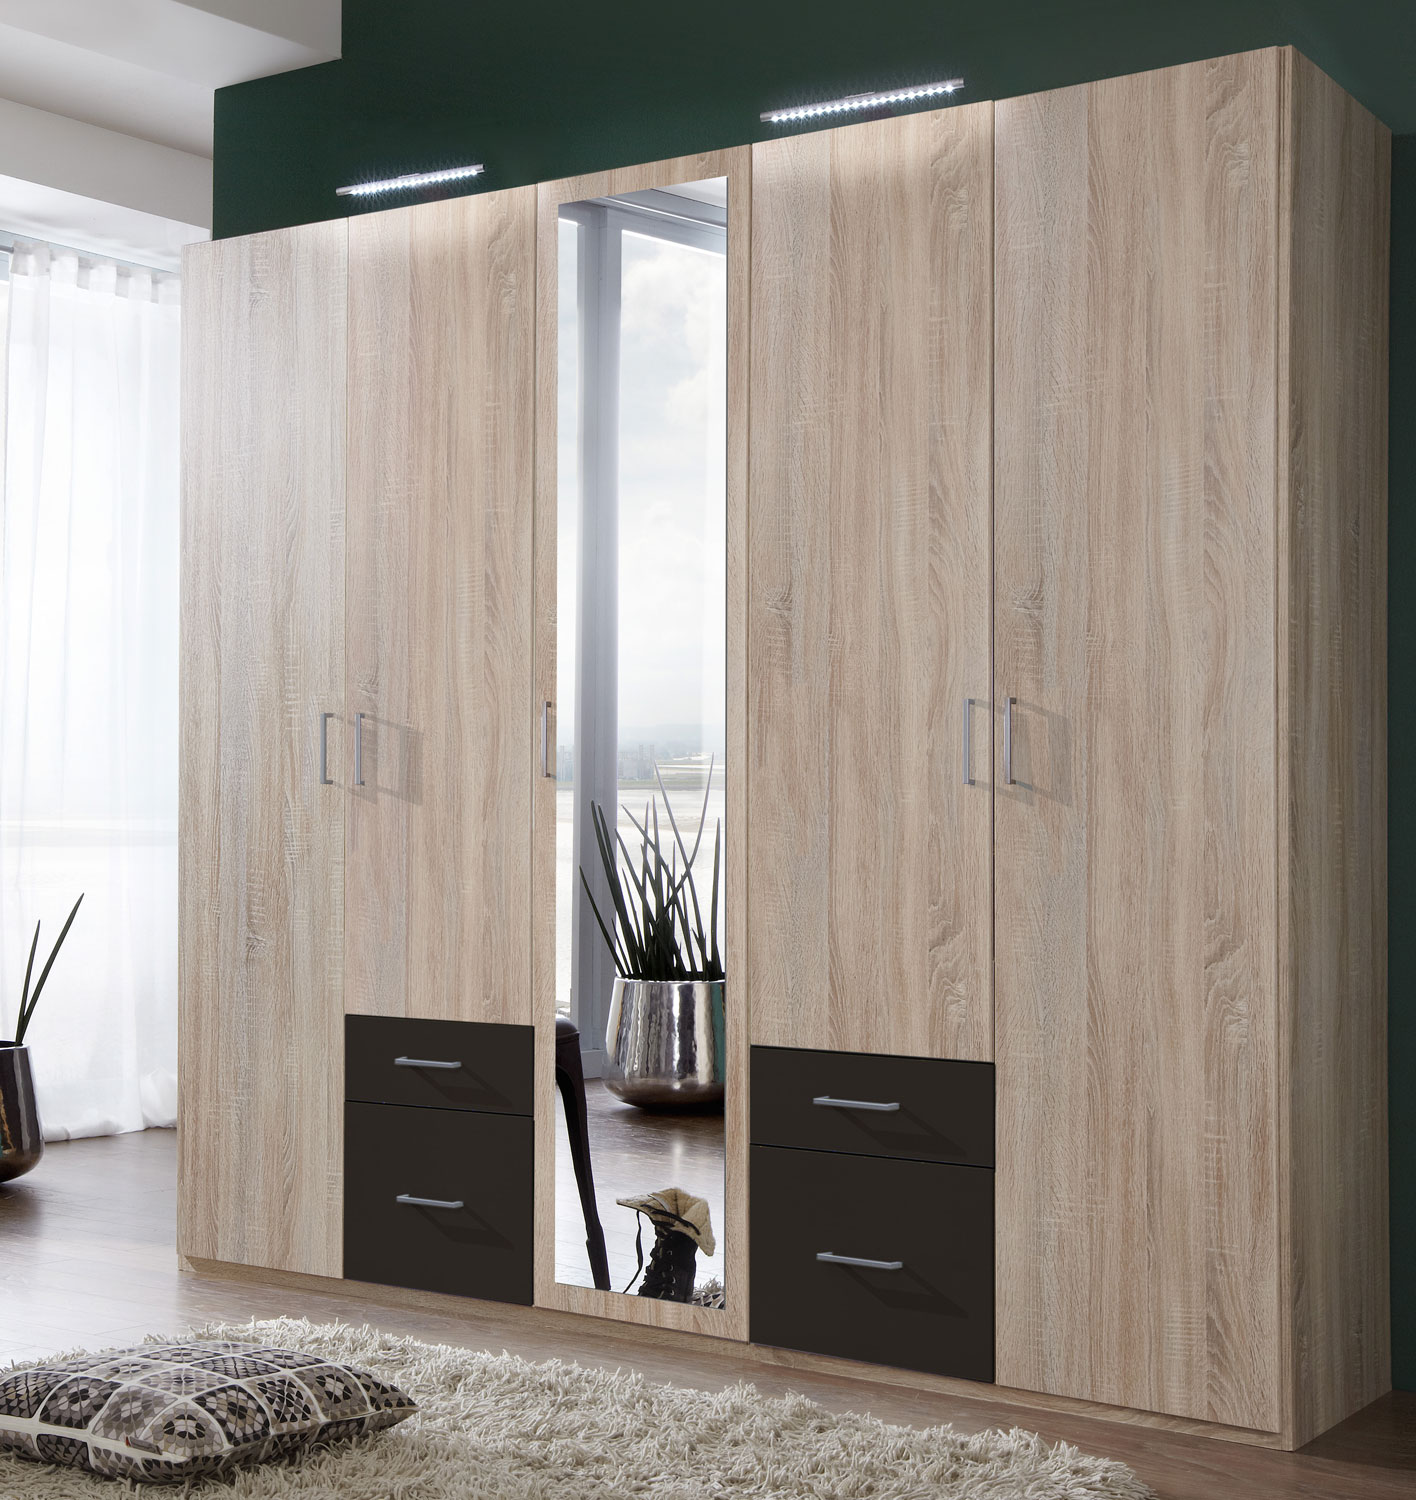 wimex kleiderschrank schrank eiche s gerau graphit 225cm 879120 13764 ebay. Black Bedroom Furniture Sets. Home Design Ideas